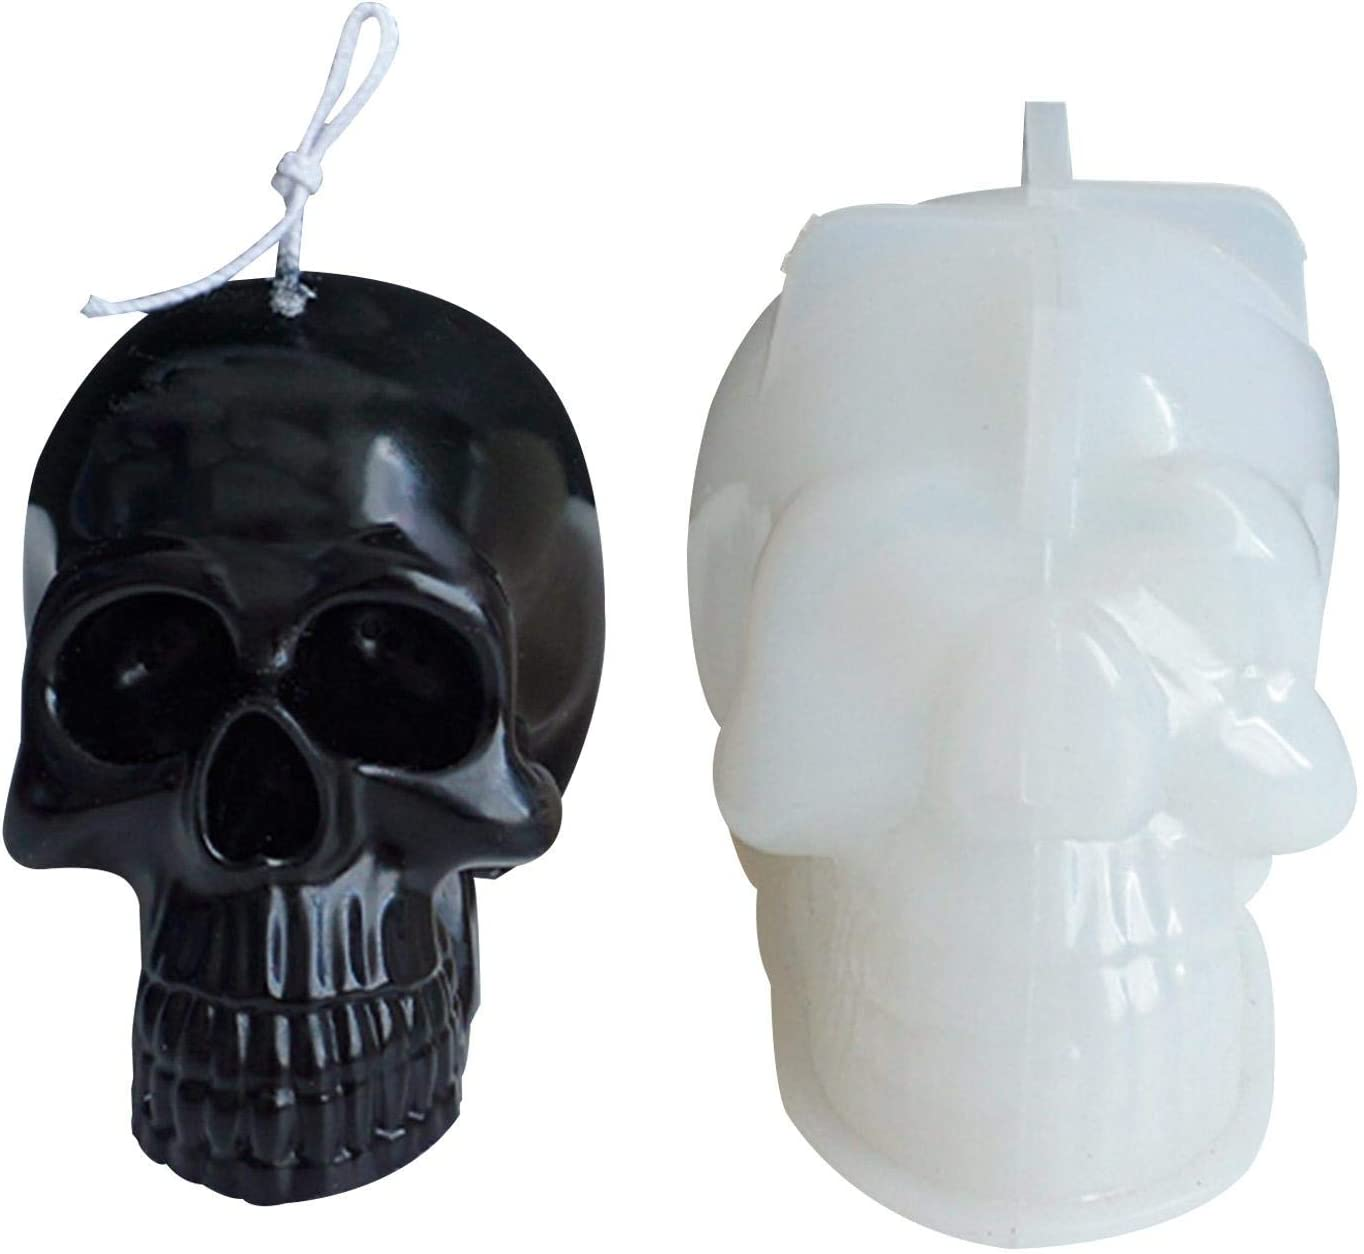 Candle Silicone Mold Durable Mould 3D Skull Flexible Silicone Ice Cube Mold Tray for Gifts Skulls Mold Skull-Shaped